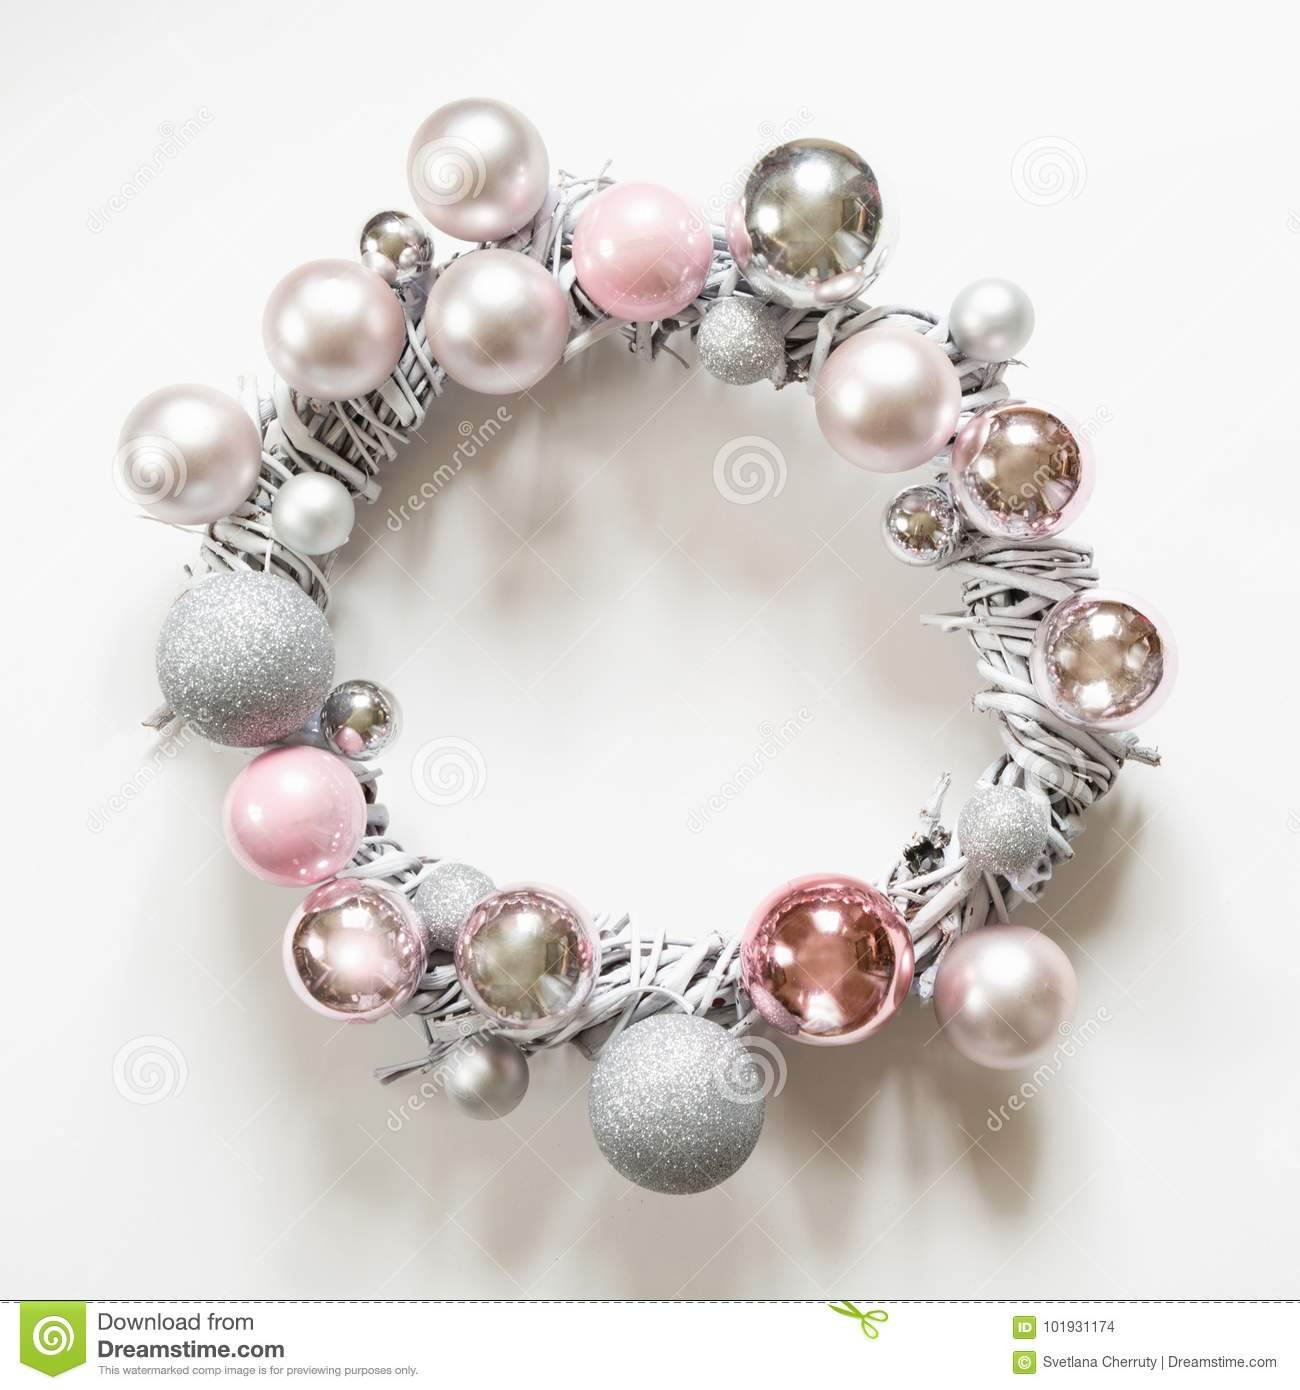 Christmas wreath of decor, silver and pink balls, painted vine on white.